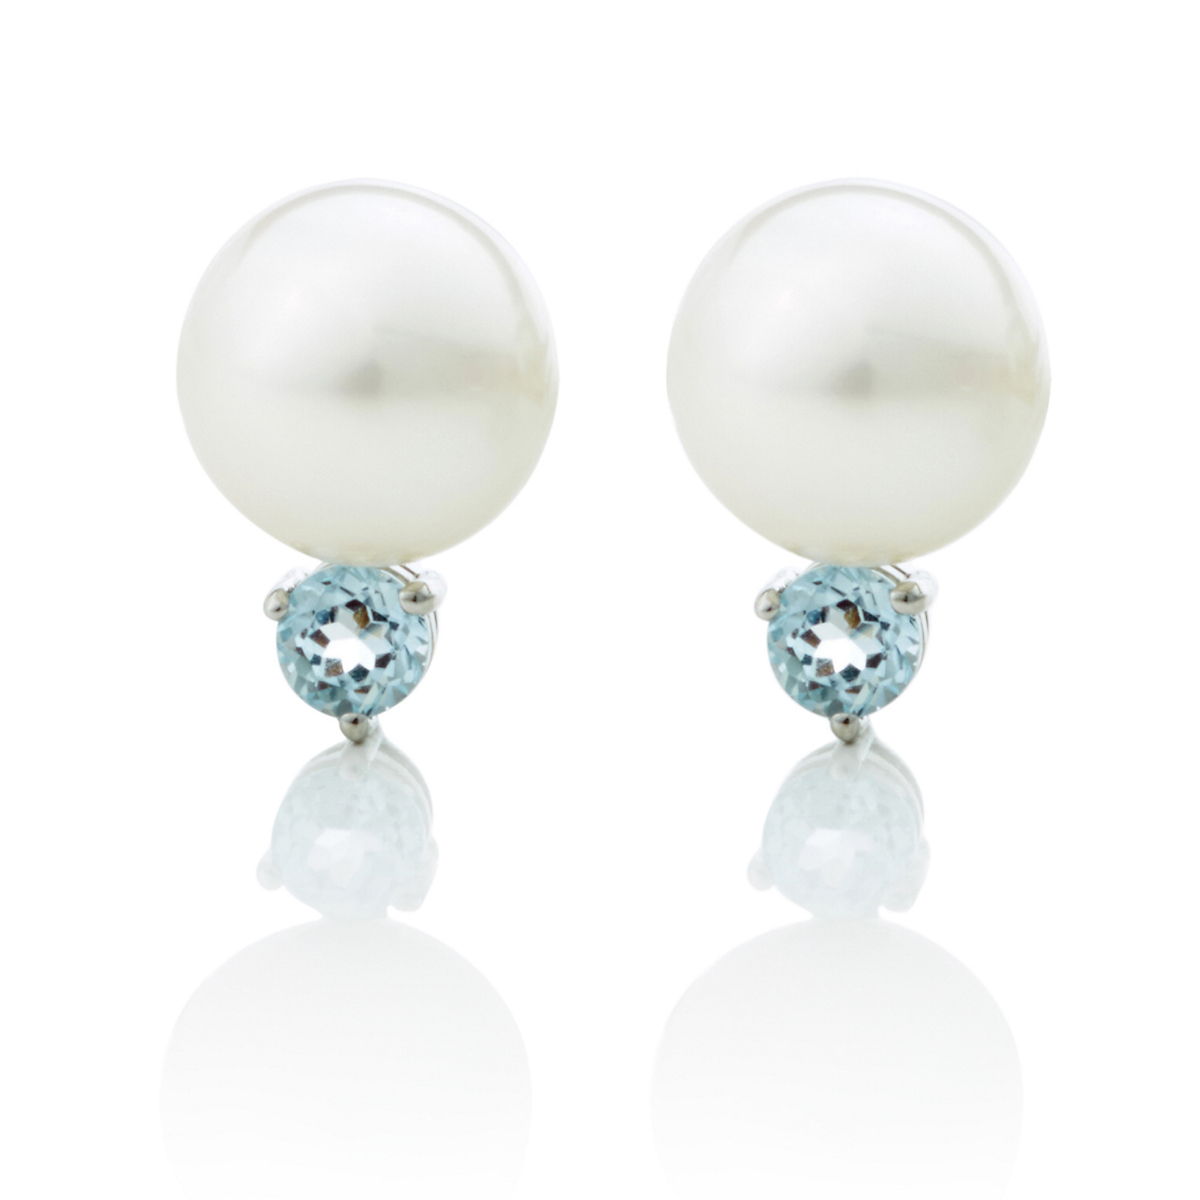 Gump's White Freshwater Pearl, Blue Topaz & Silver Earrings